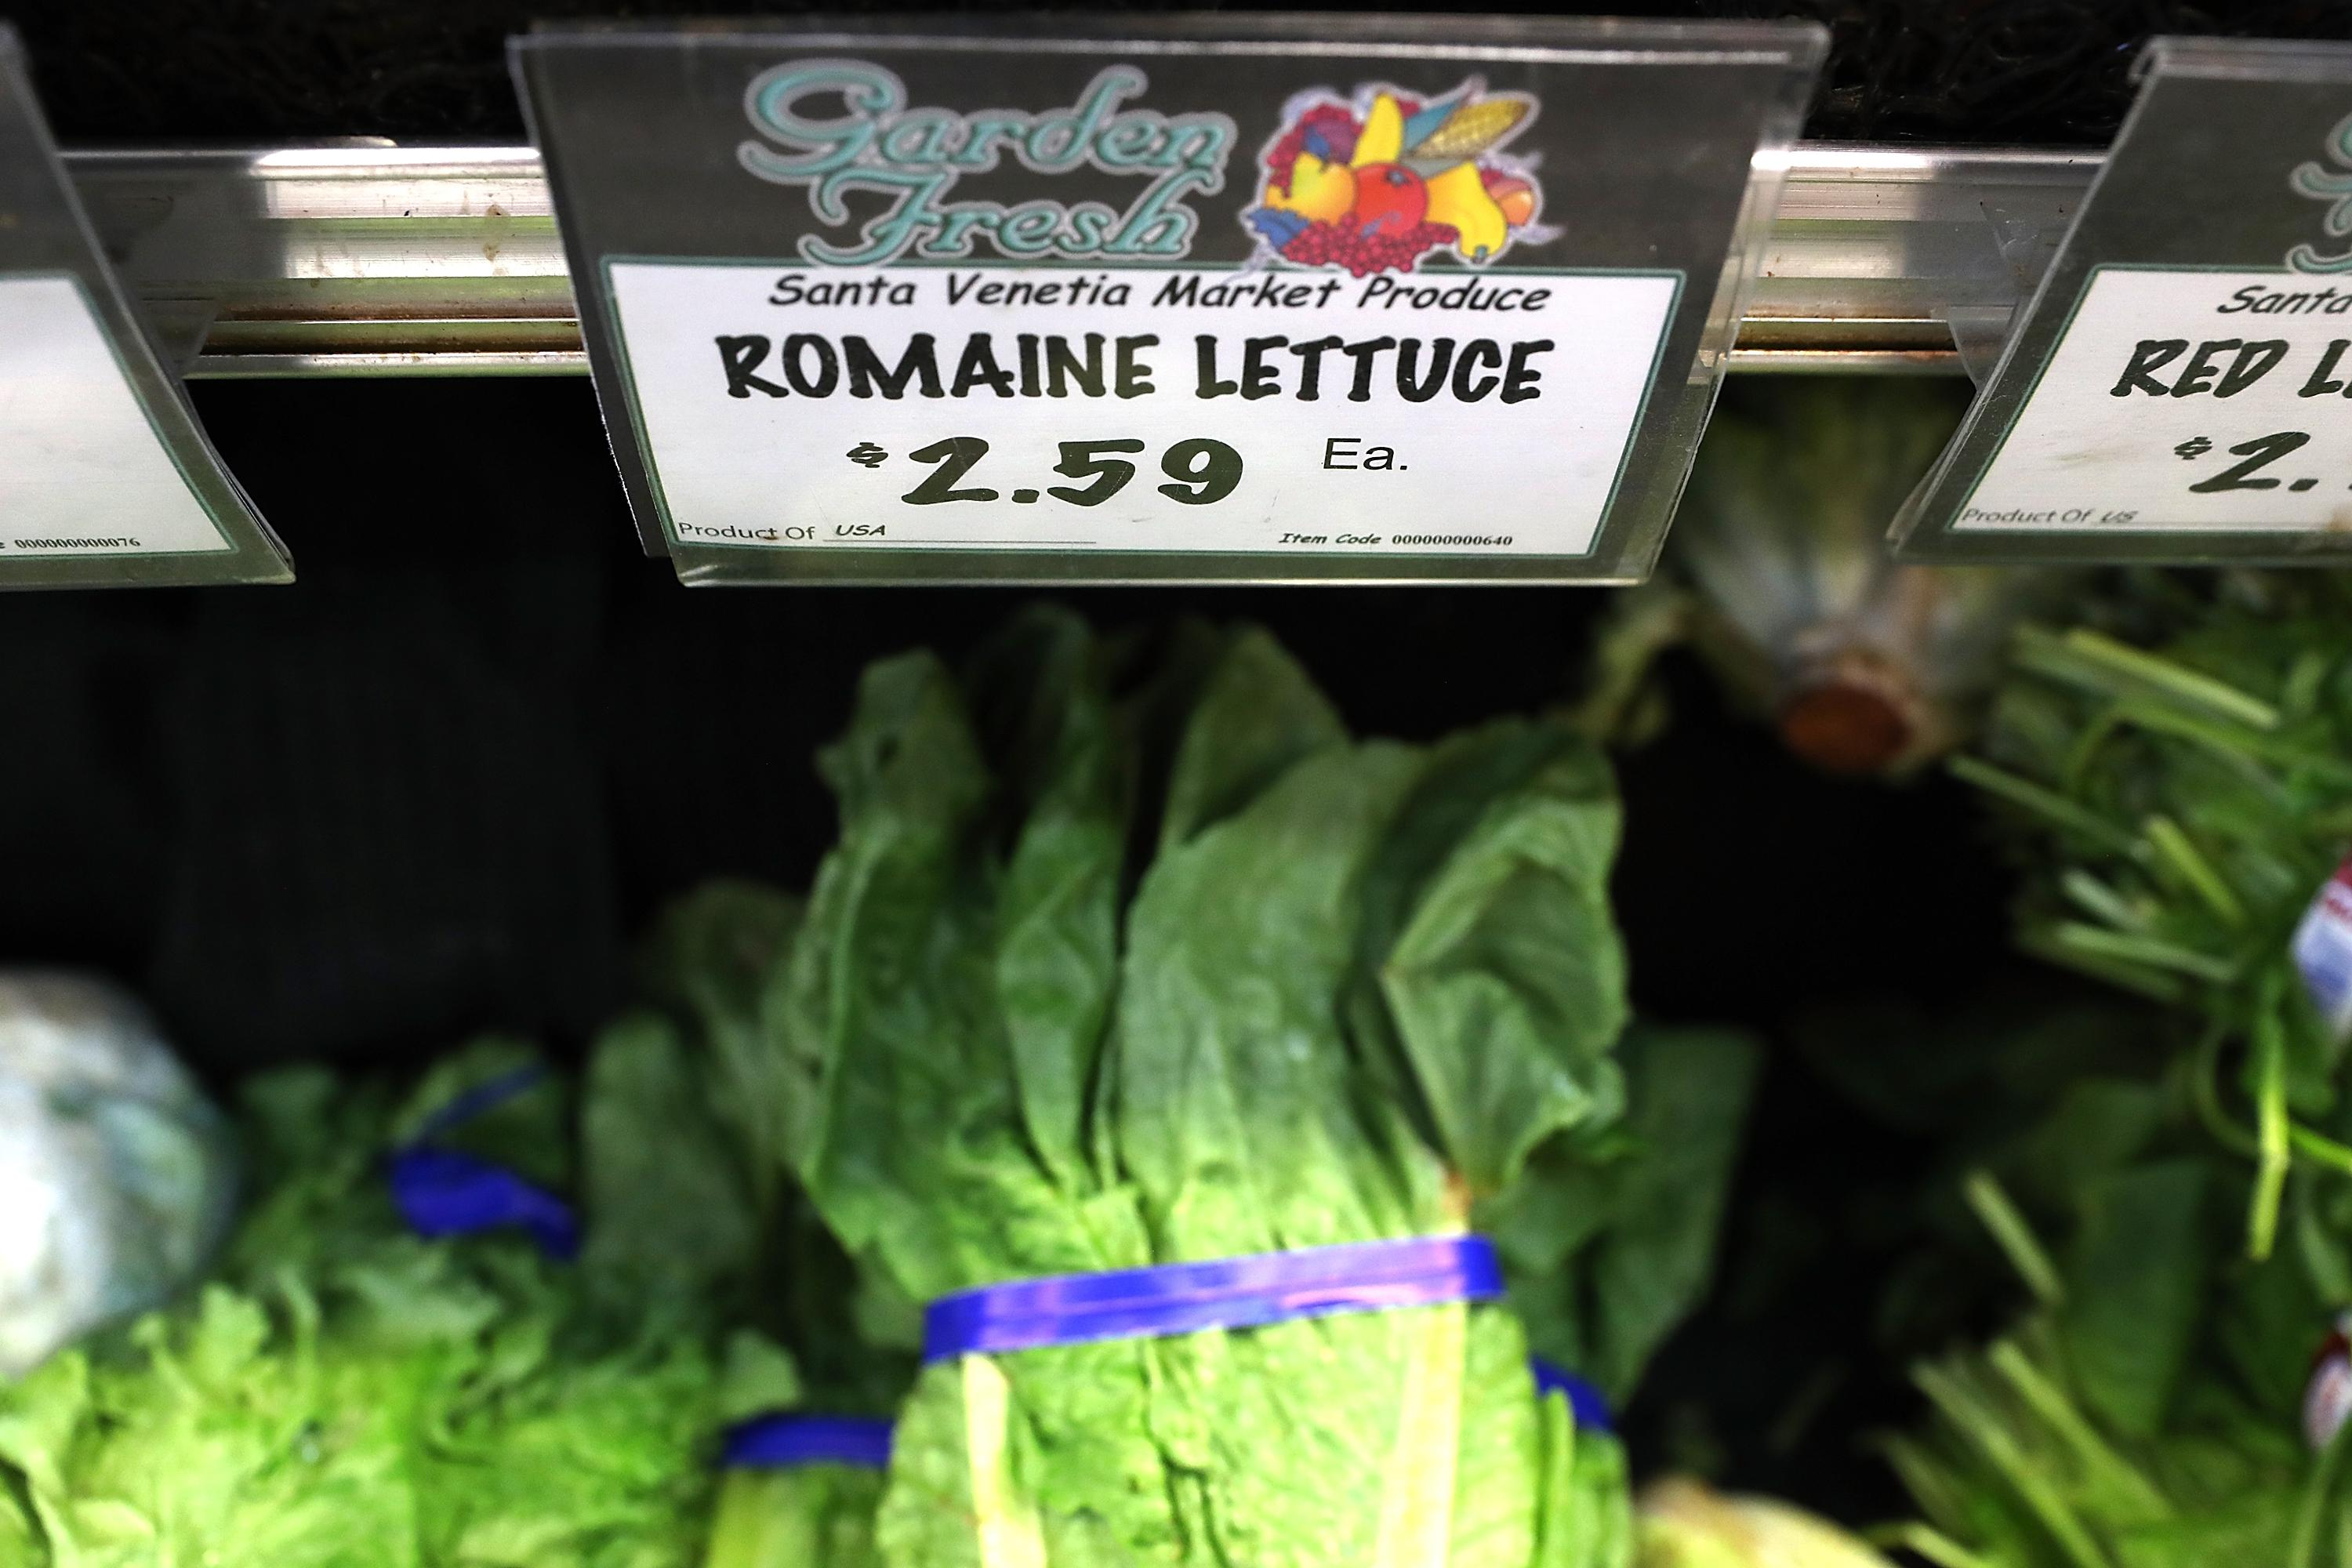 Romaine lettuce is displayed on a shelf at a supermarket.